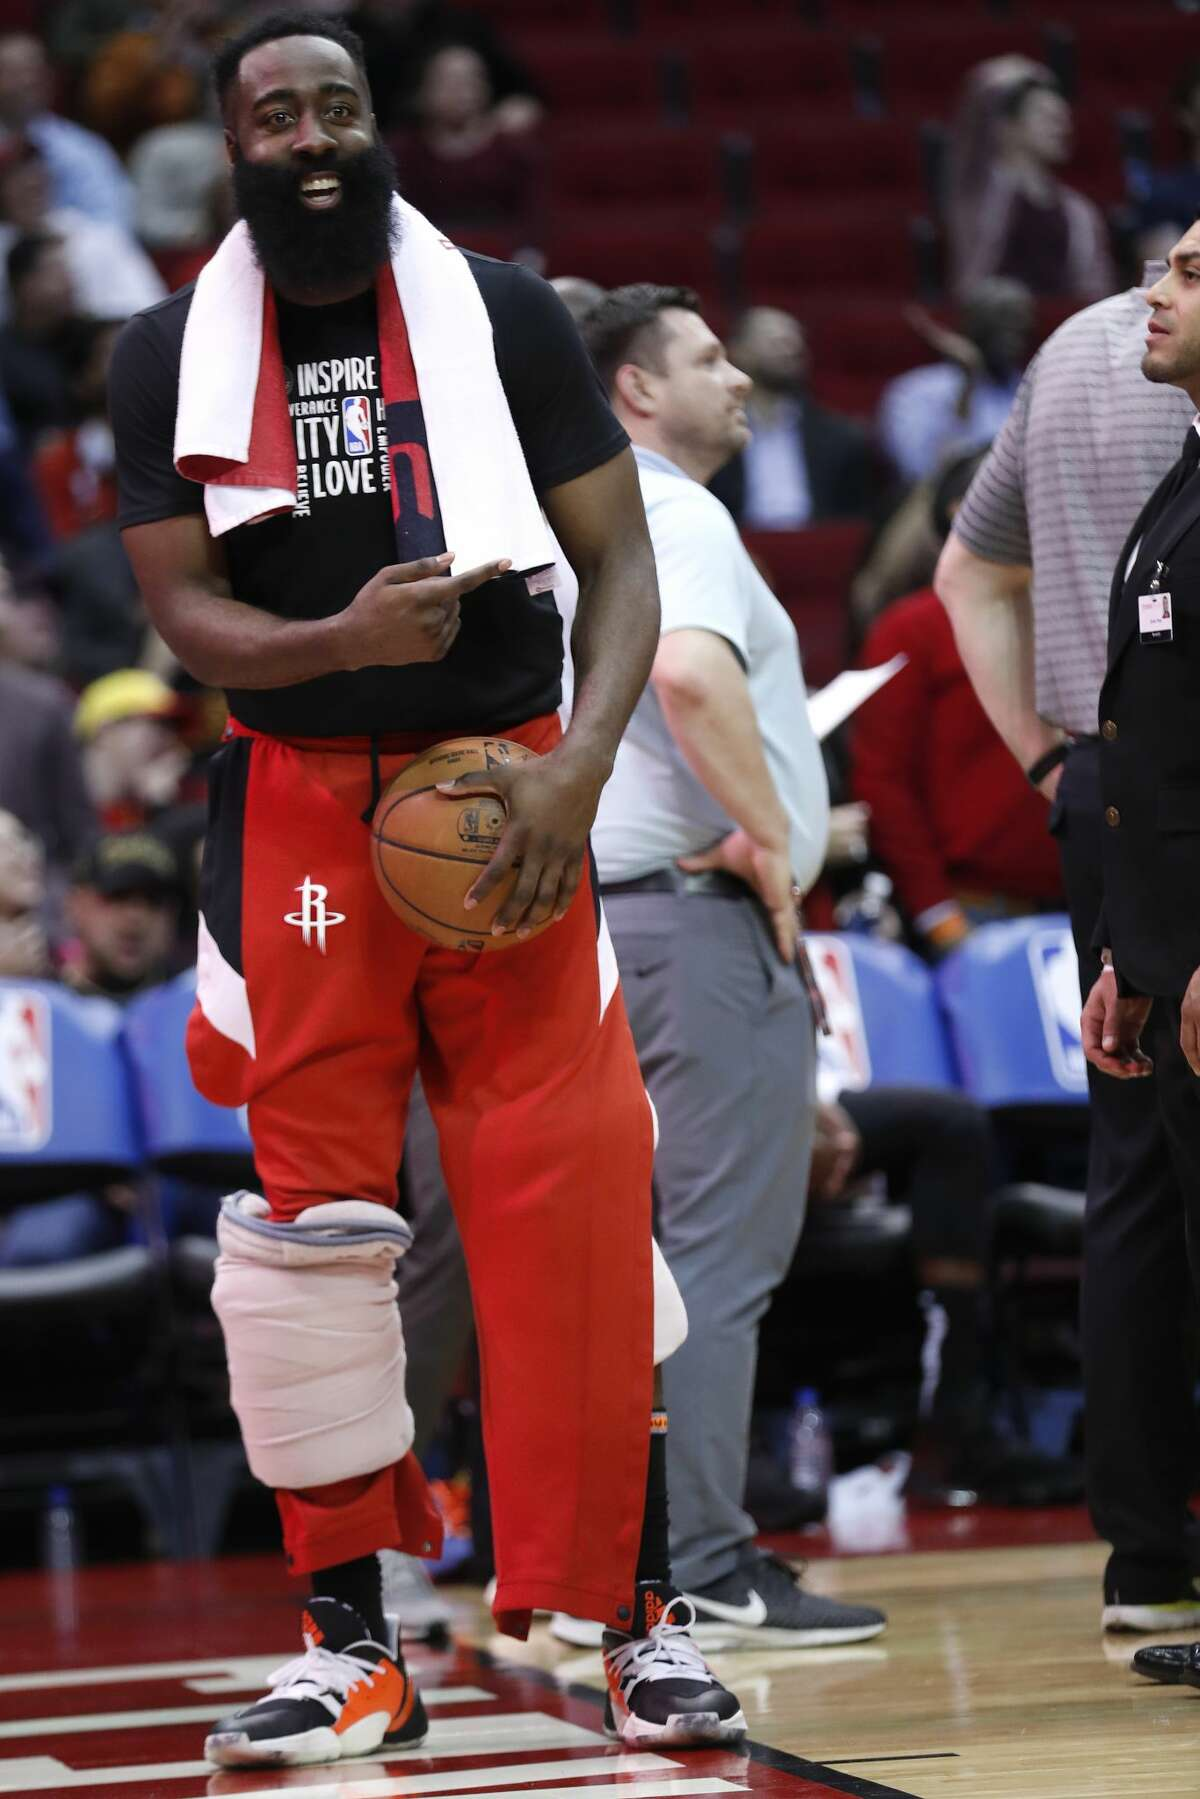 Houston Rockets guard James Harden interacts with the fans during the second half with a big lead over the Memphis Grizzlies of an NBA basketball game on Wednesday, Feb. 26, 2020, at Toyota Center in Houston.